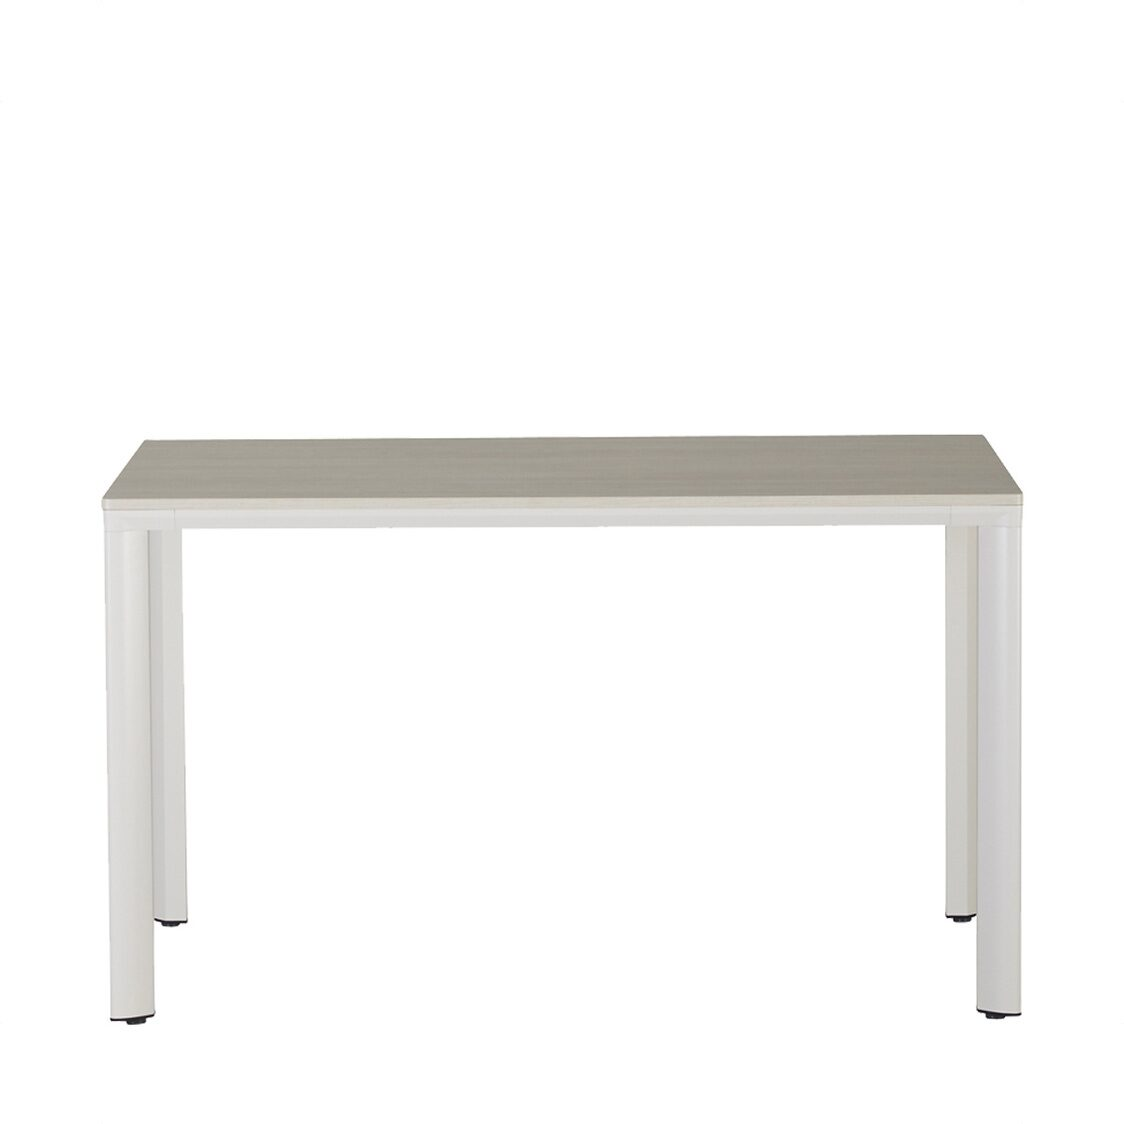 DELIC Dining Table for 4 LPM HT11T13EL-OSIIV